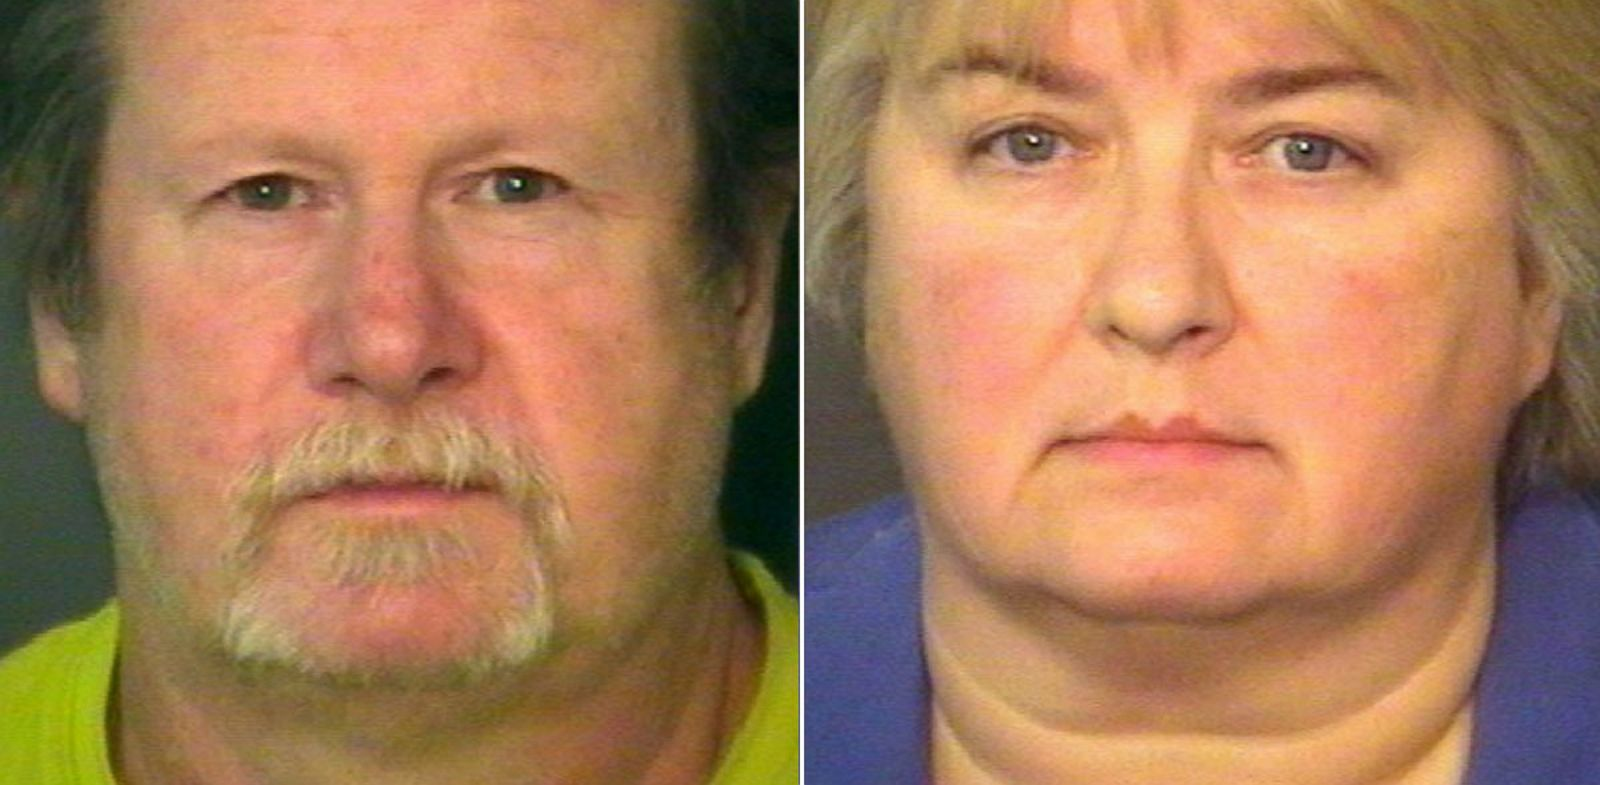 PHOTO: From left, Dorian Lee Harper and Wanda Sue Larson are pictured in undated booking photos.